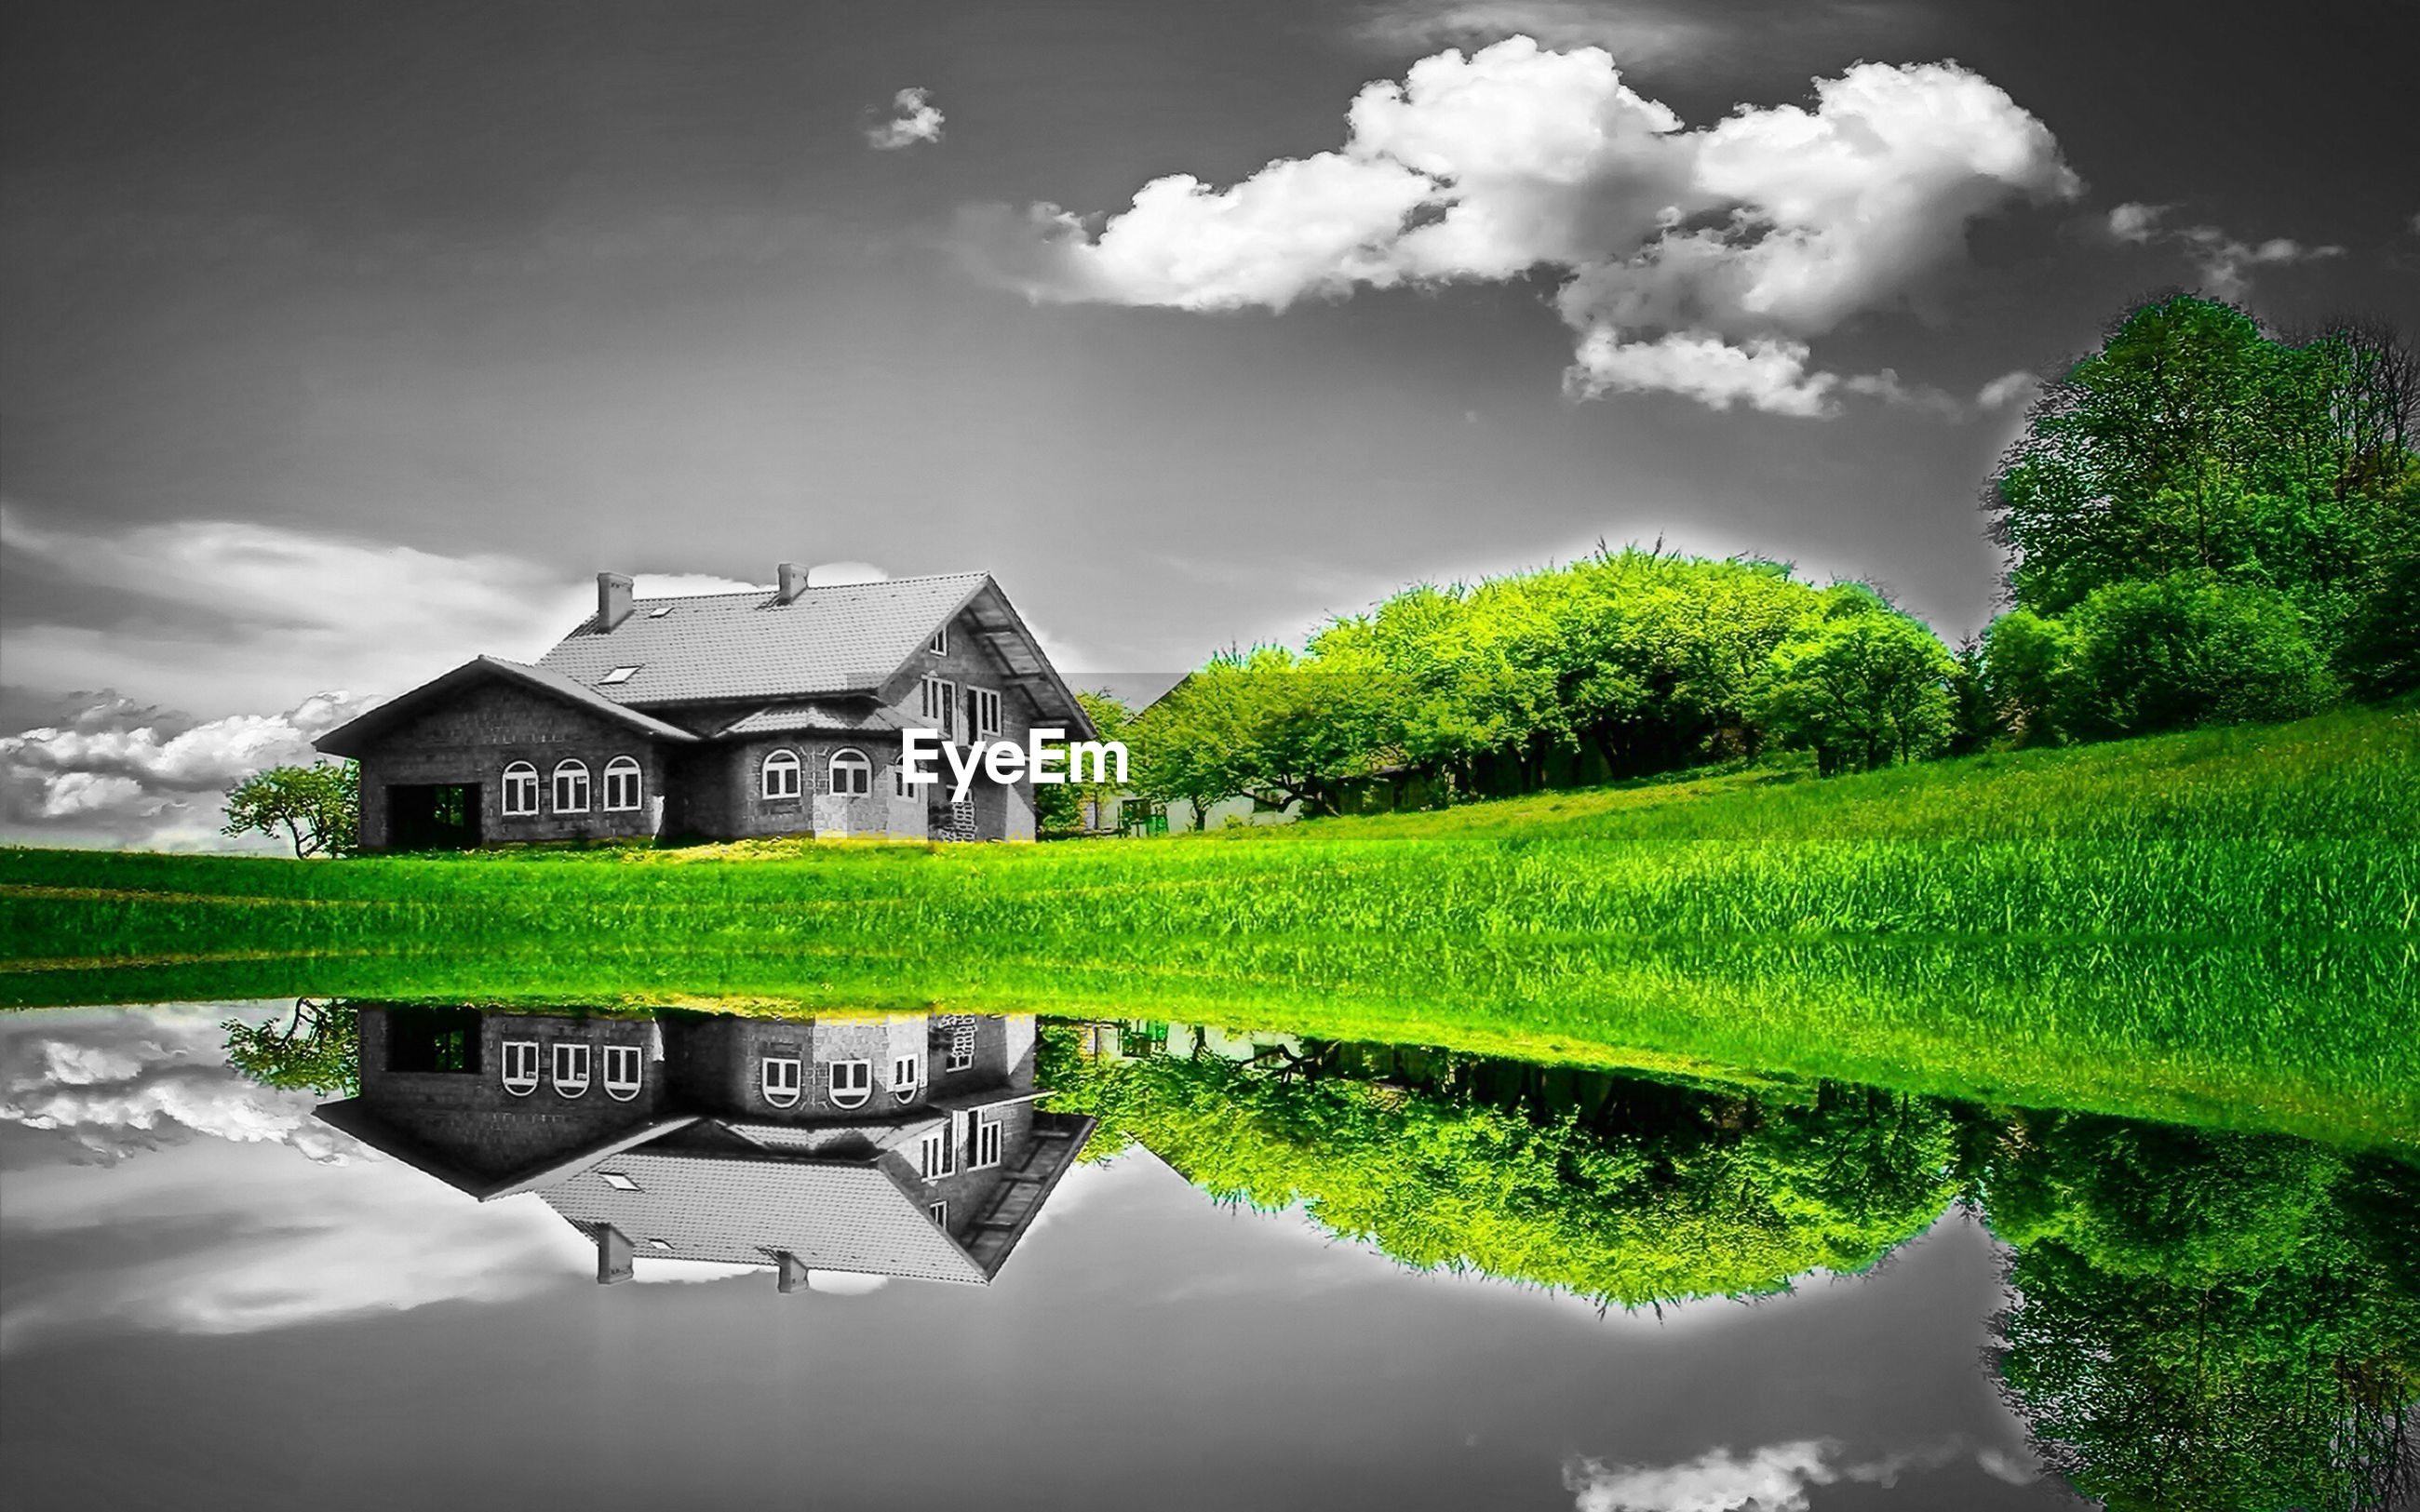 architecture, built structure, building exterior, sky, cloud - sky, water, reflection, green color, tree, house, cloud, cloudy, nature, grass, pond, day, outdoors, growth, no people, beauty in nature